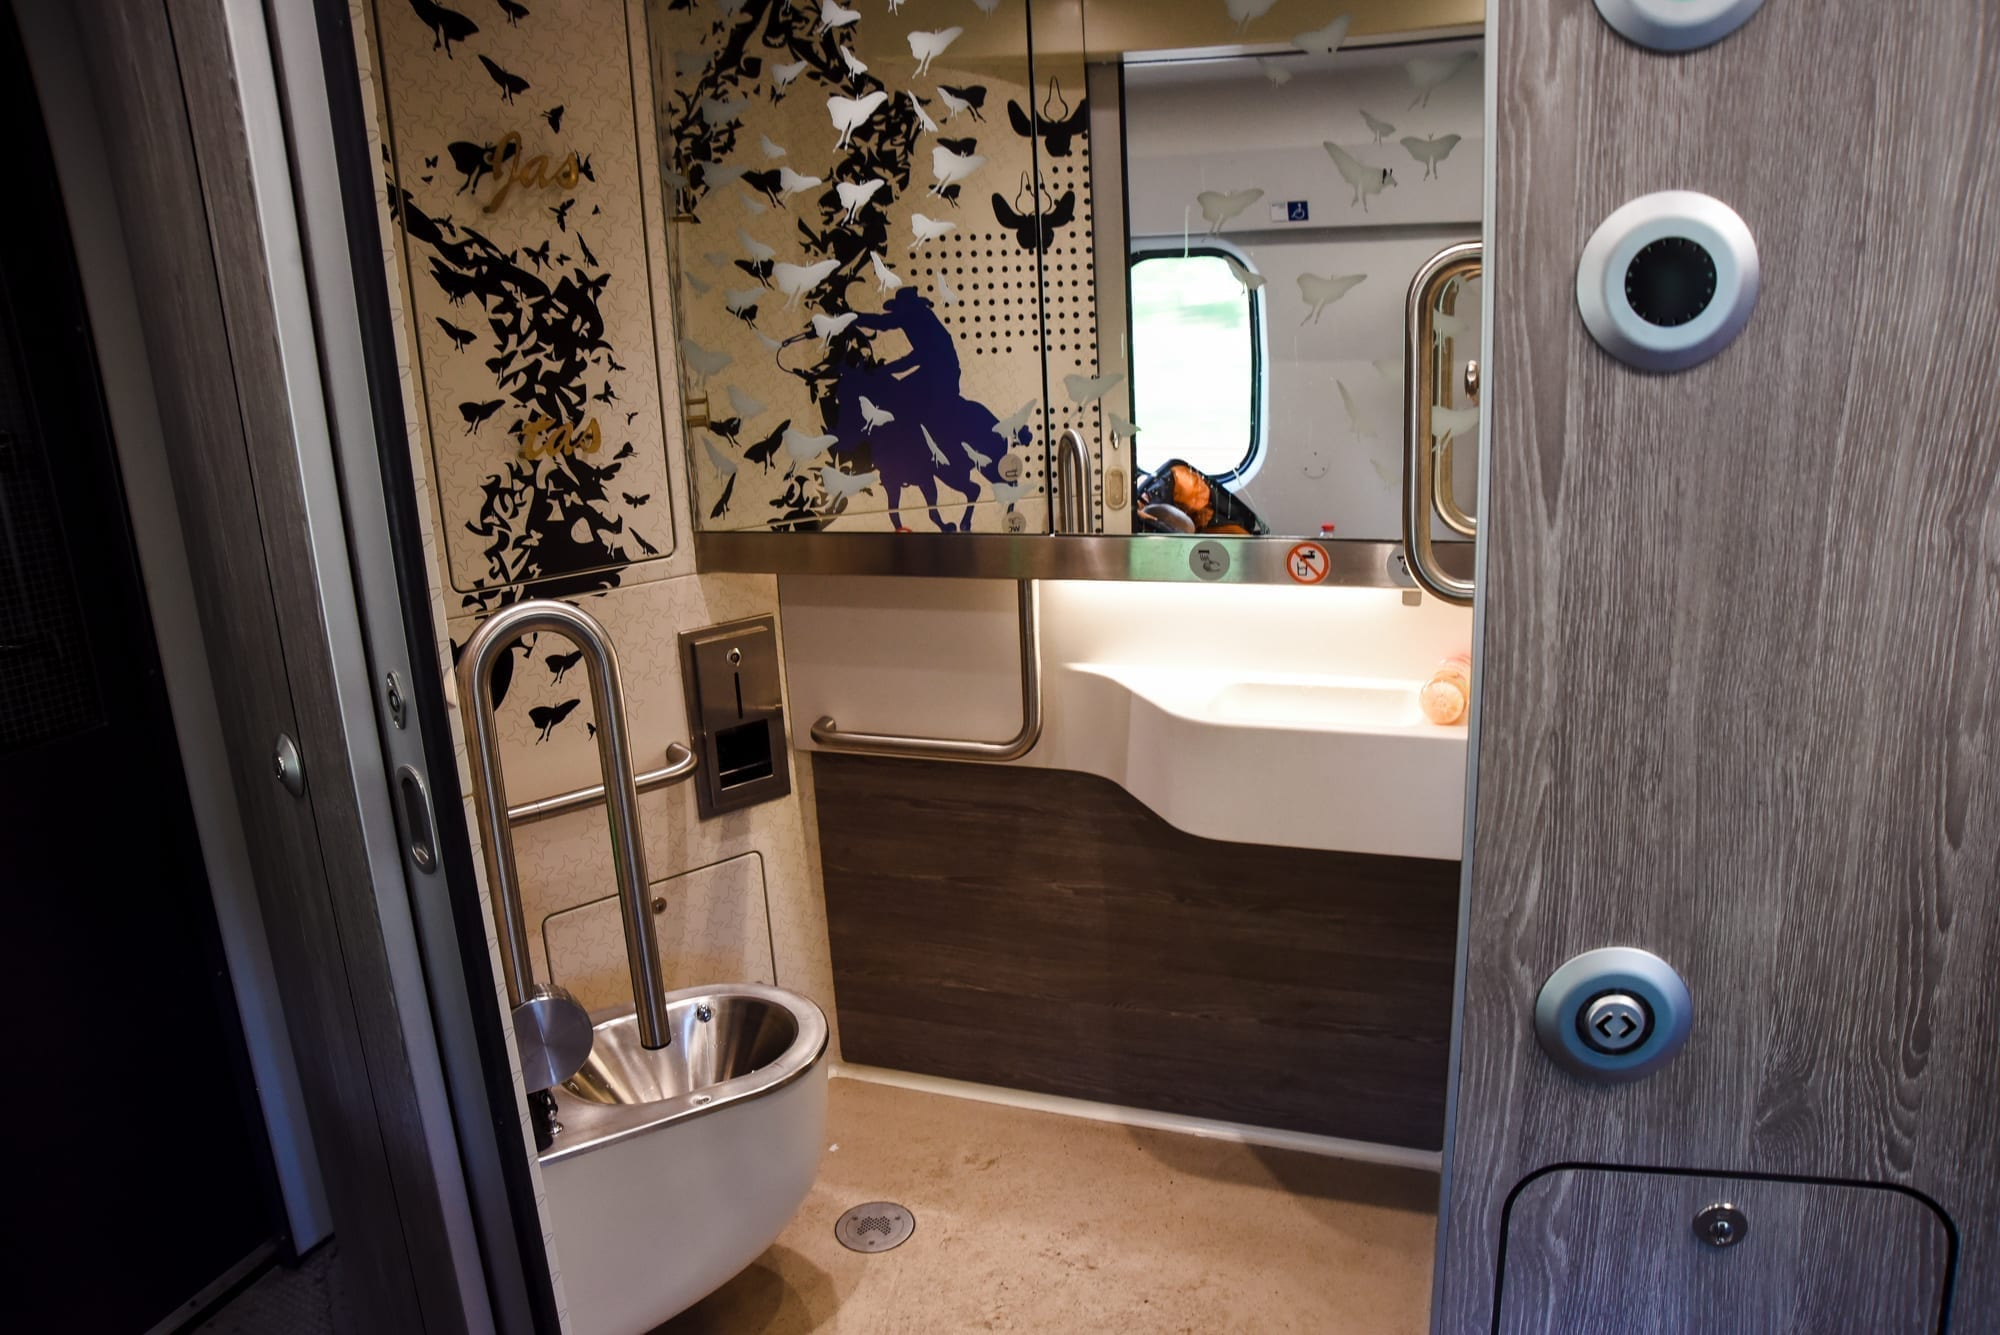 inter-city train bathroom in holland - a sliding door opens for a wheelchair accessible bathroom and an accessible wash stand. it is all very clean